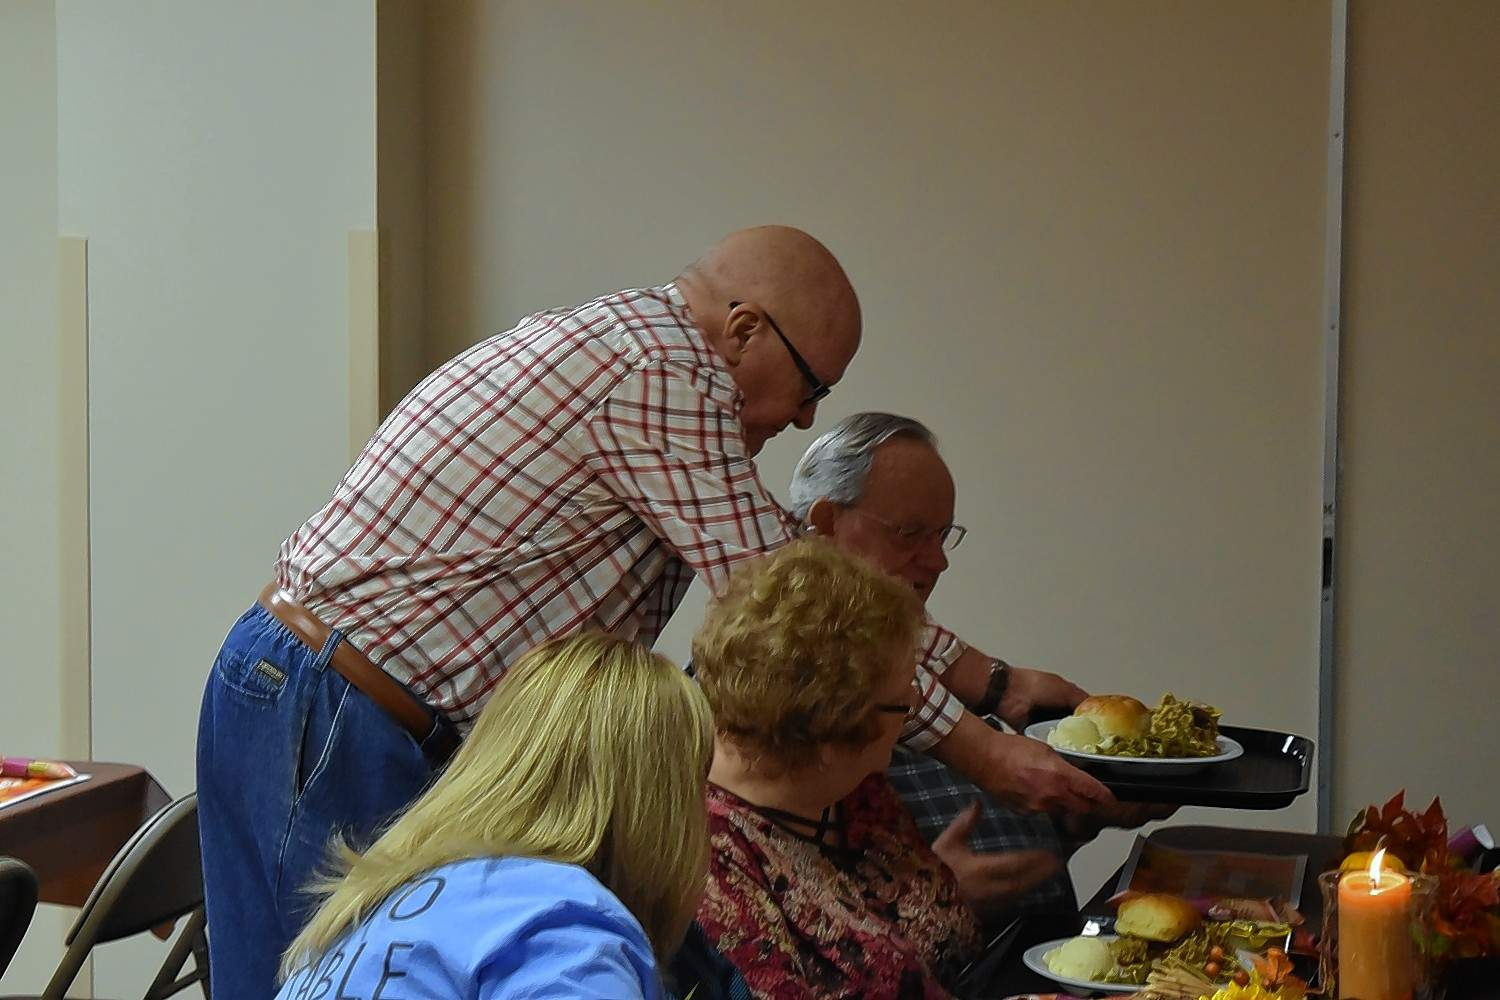 Volunteer Mickey Pankey delivers a plate of food to a guest at Harrisburg First Baptist Church's 'His Table' community dinner.